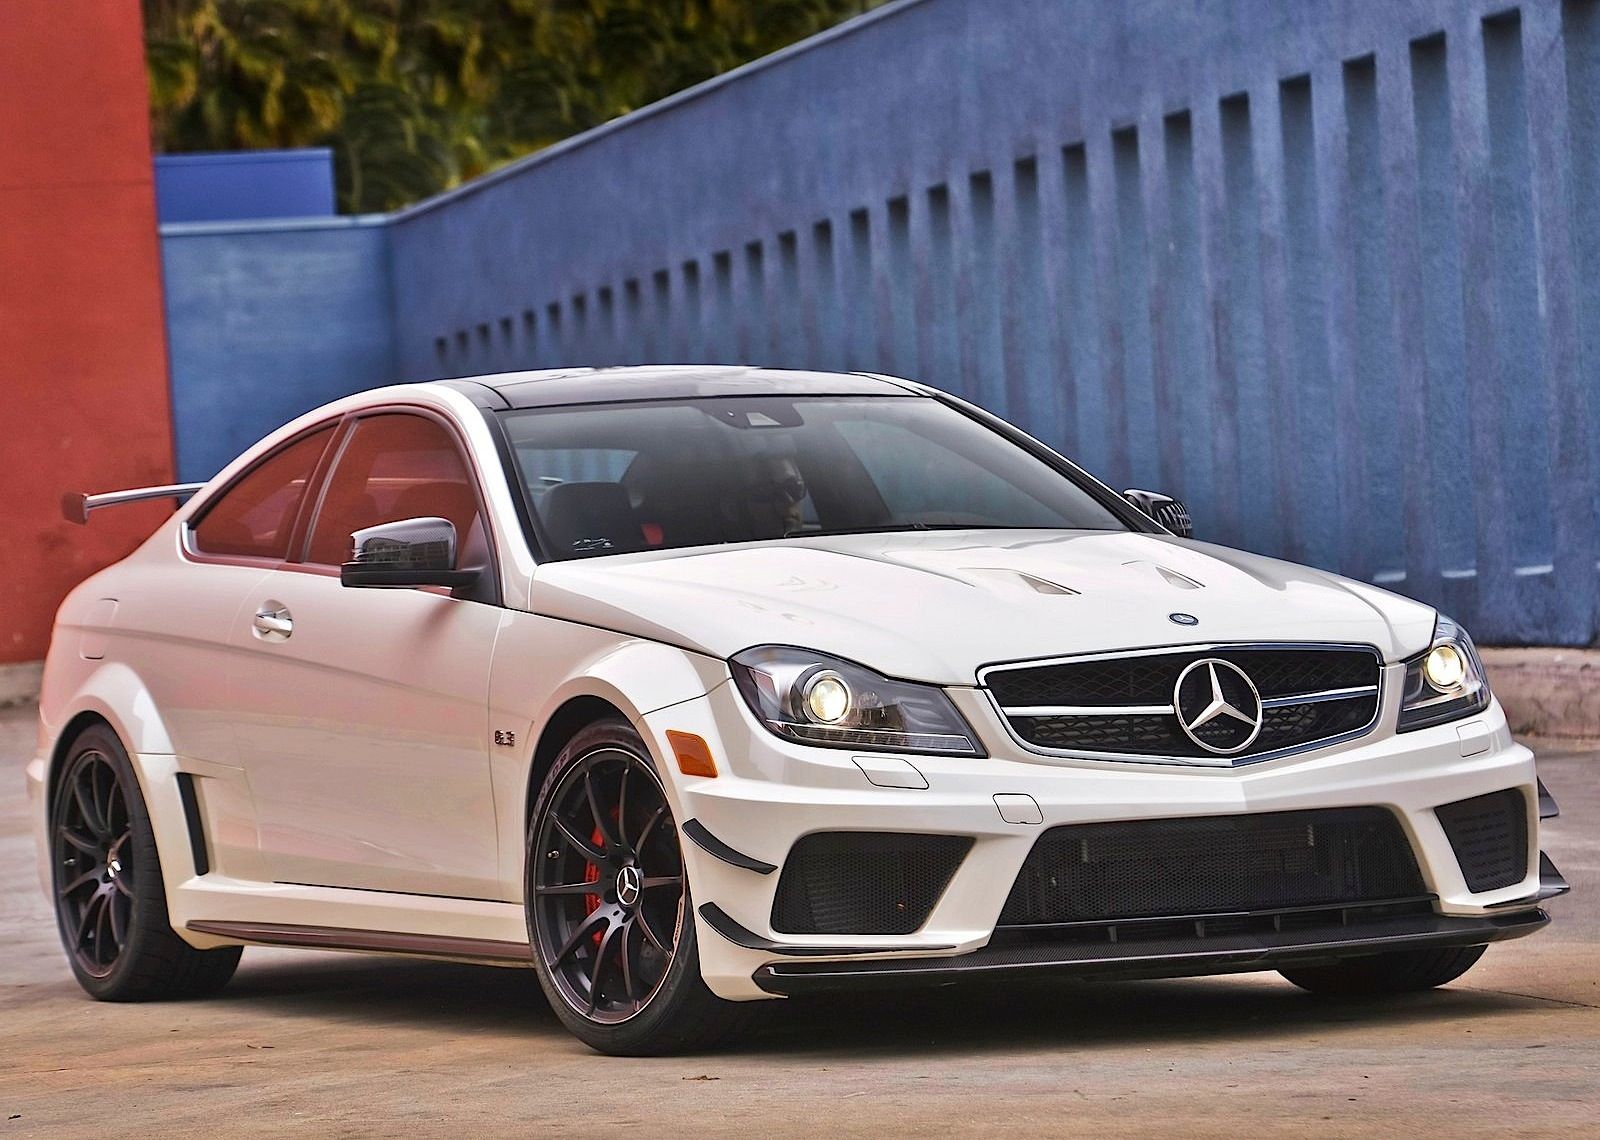 Mercedes benz c 63 amg coupe black series c204 specs for Mercedes benz sports car amg